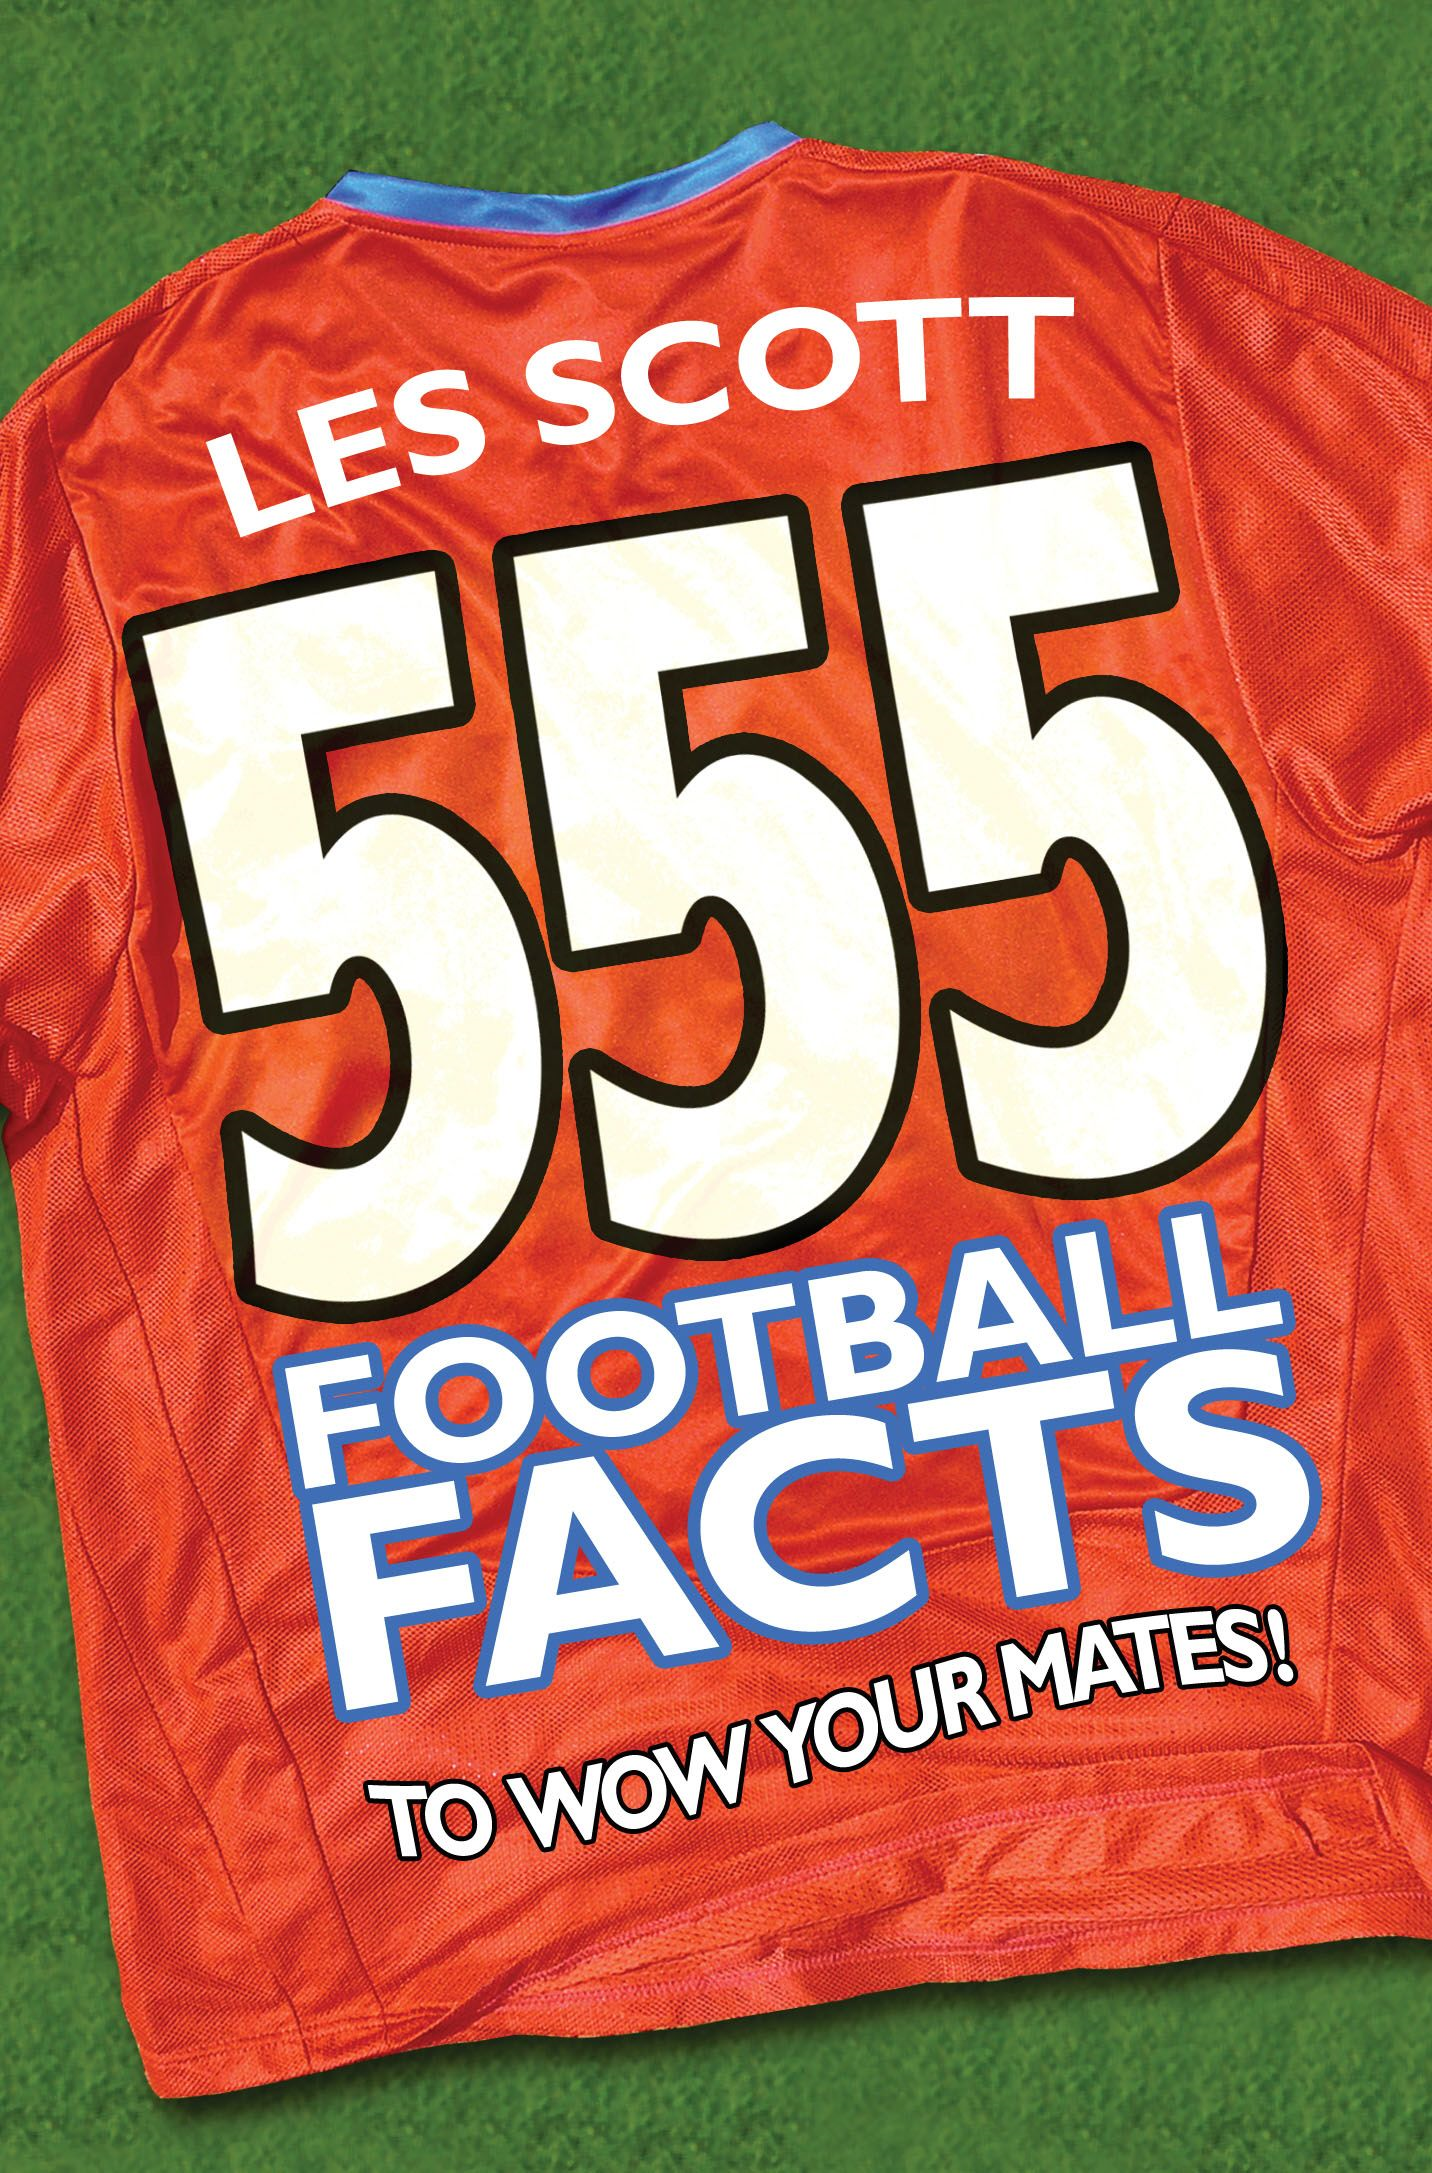 555 Football Facts To Wow Your Mates!